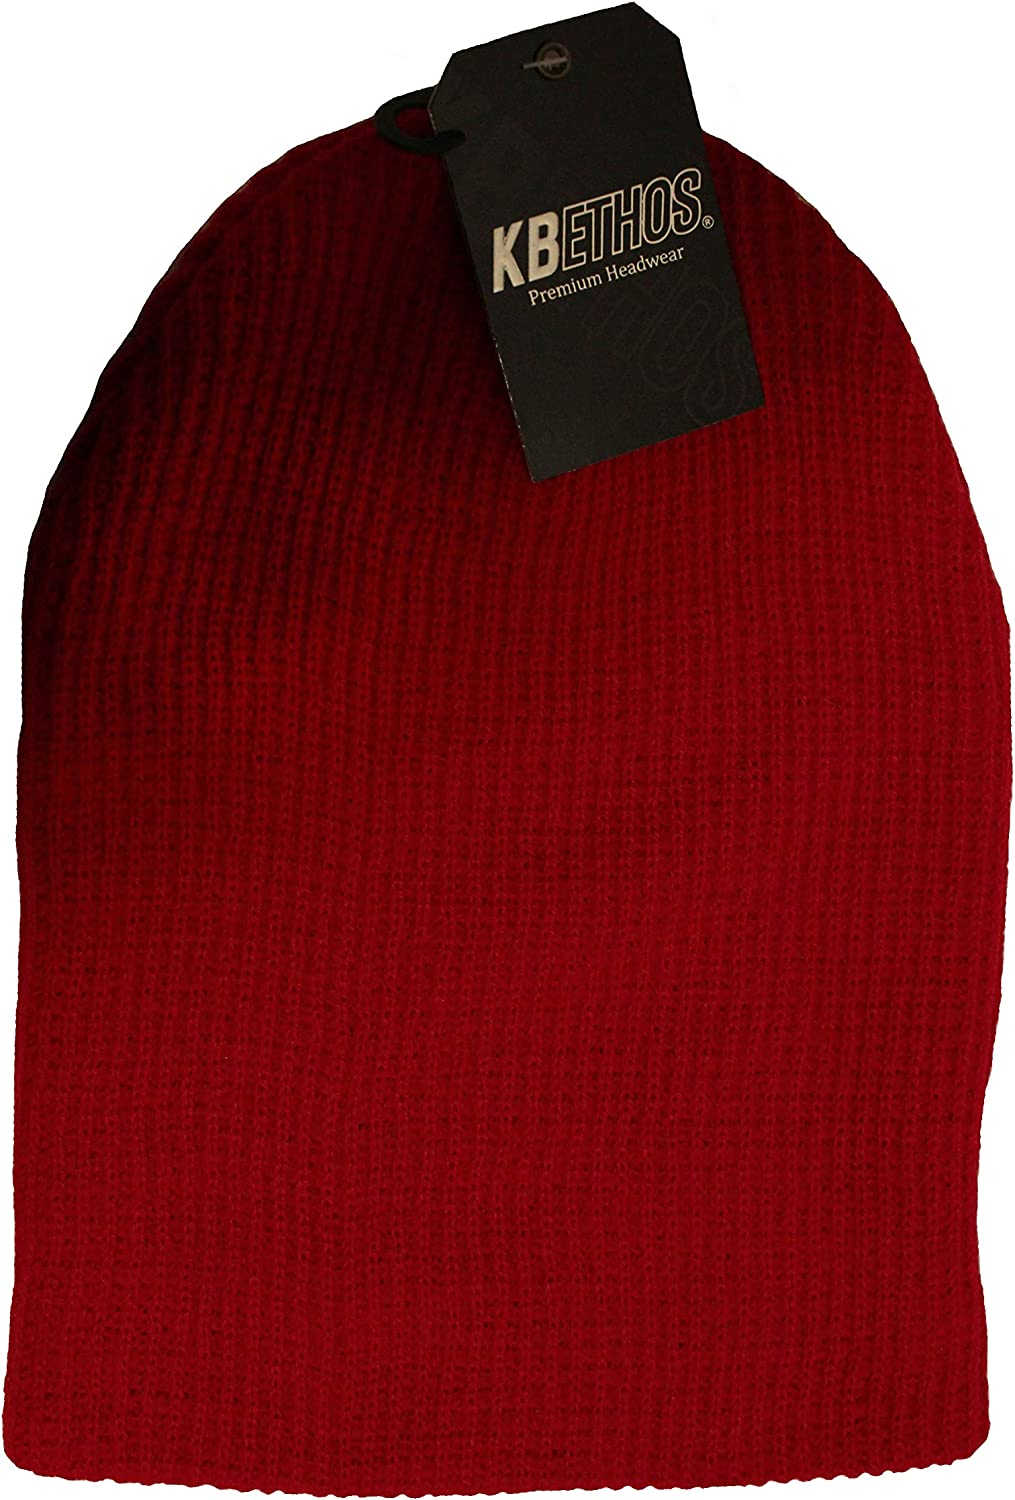 RED Slouchy Beanie Hat .KBETHOS. Style : KBW - 12 New